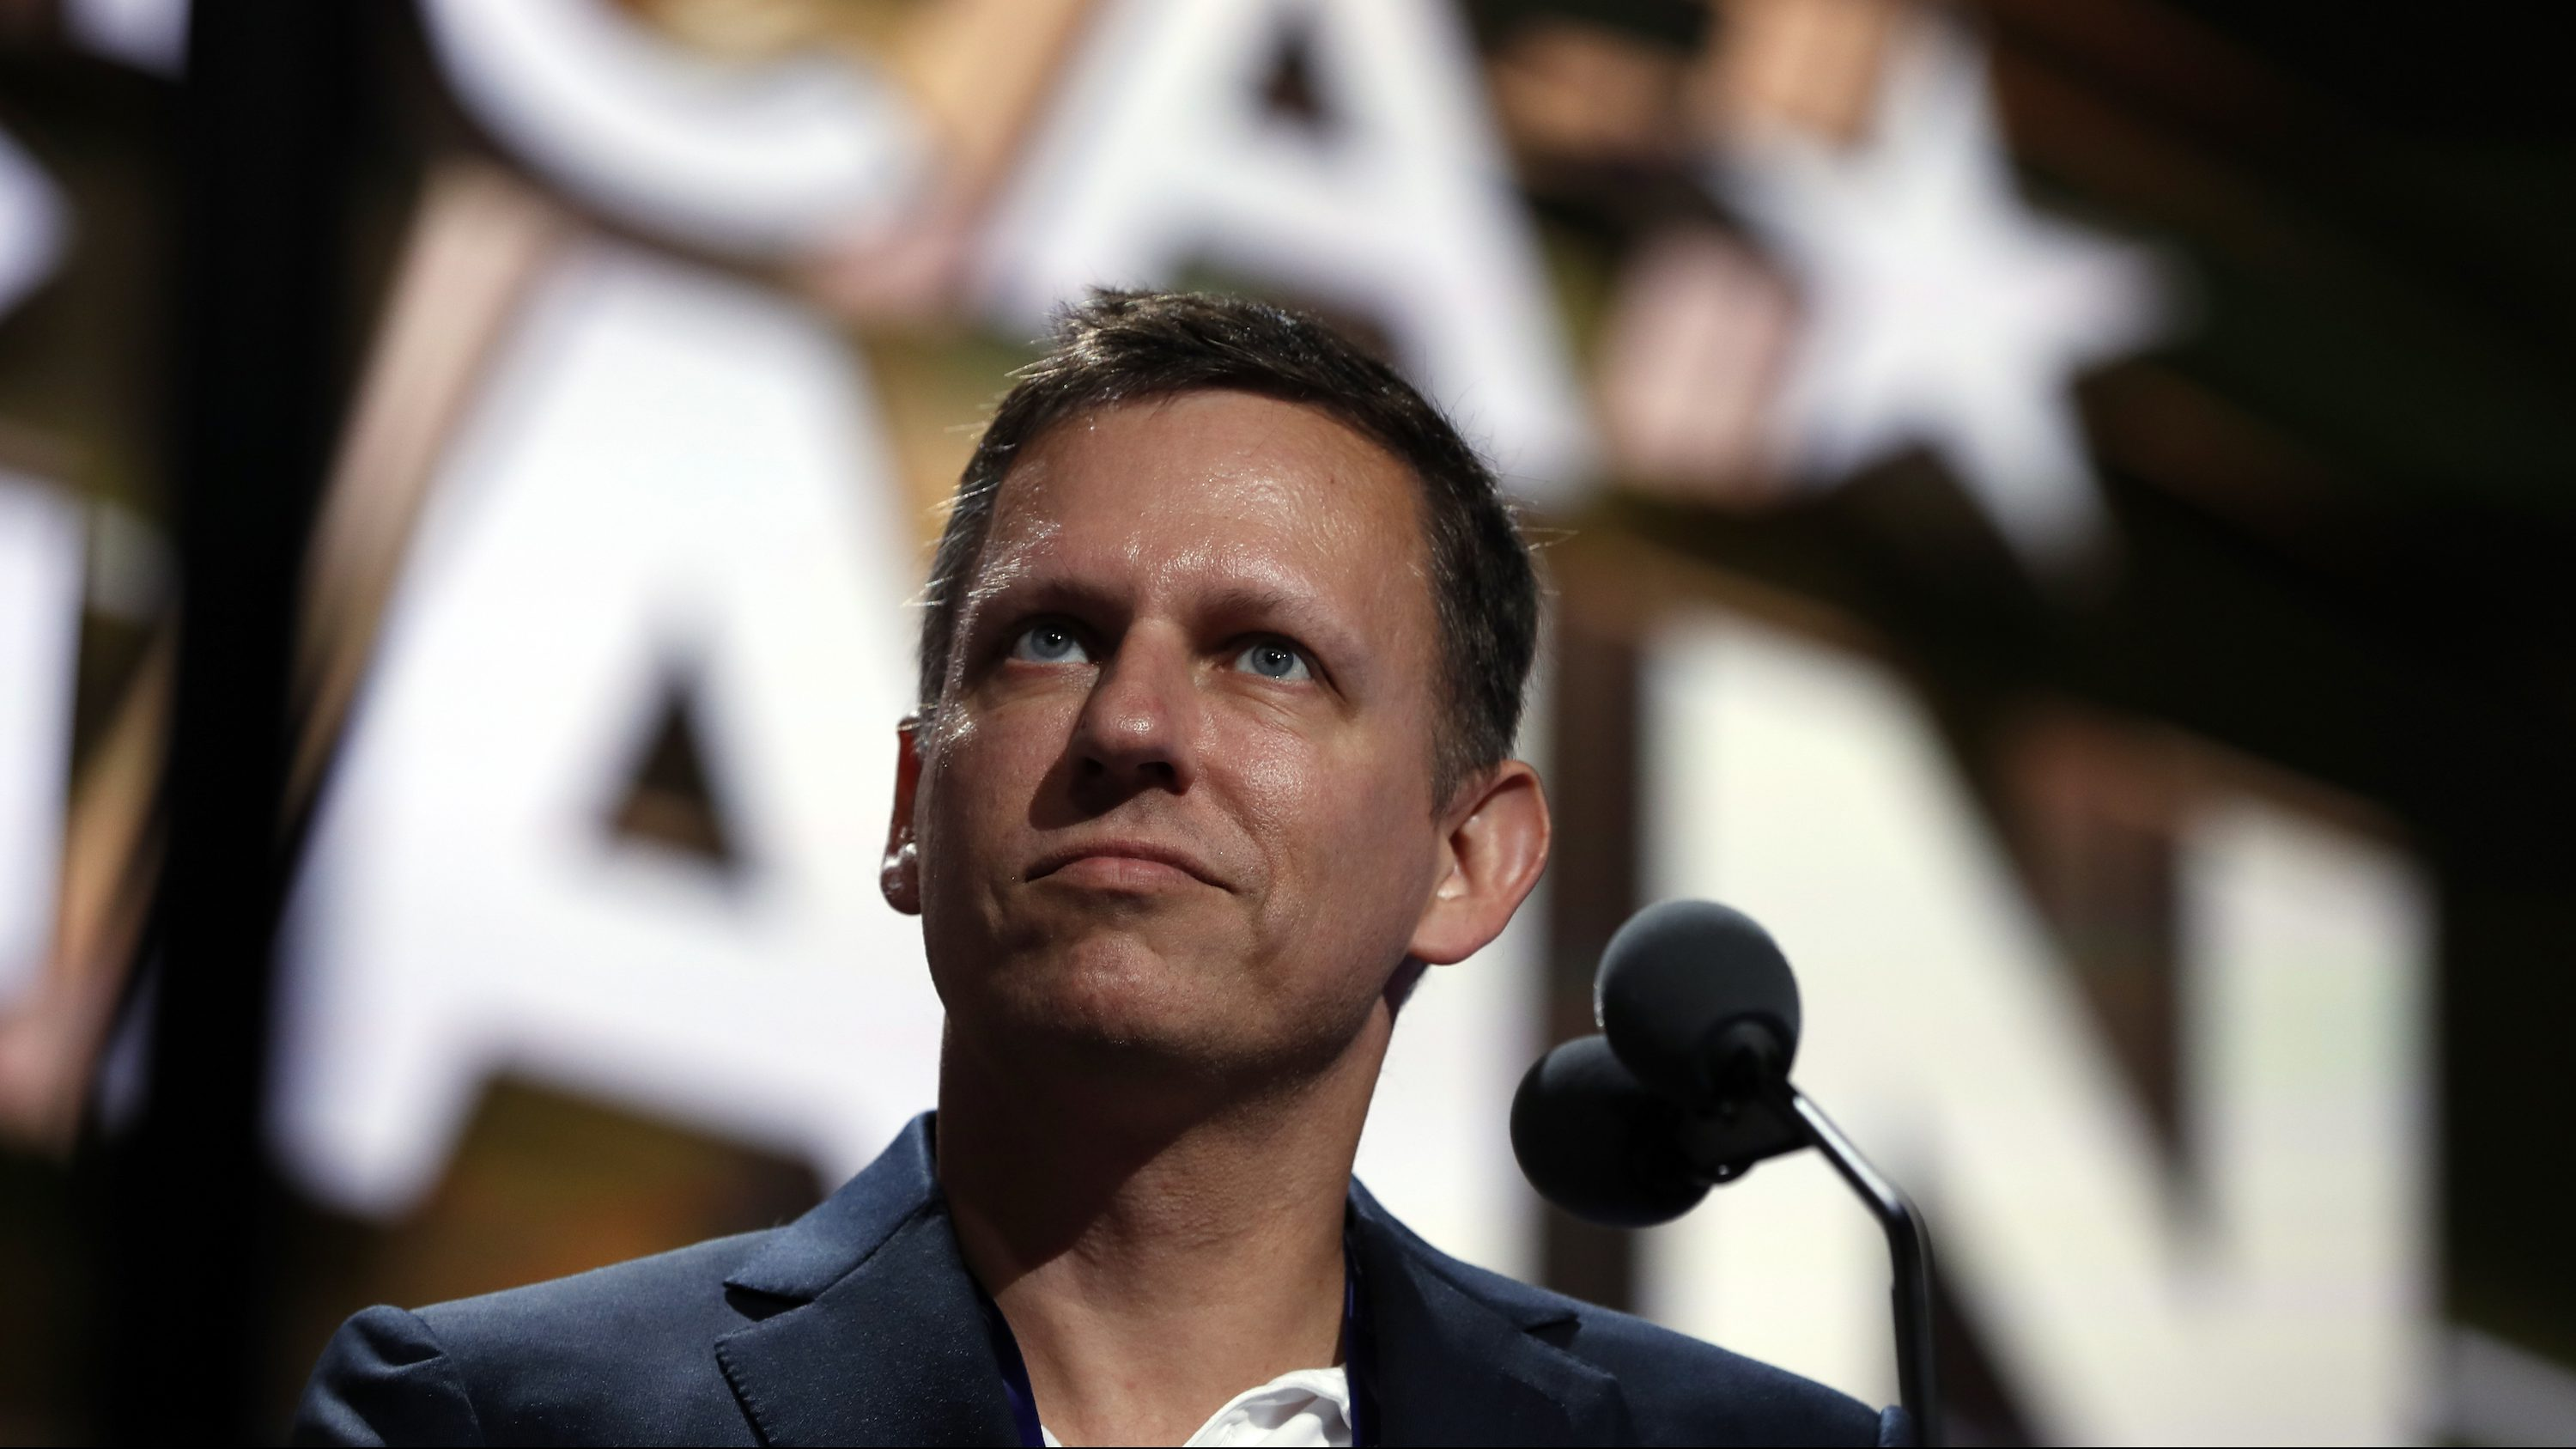 Billionaire tech investor Peter Thiels look over the podium before the start of the second day session of the Republican National Convention in Cleveland, Tuesday, July 19, 2016.